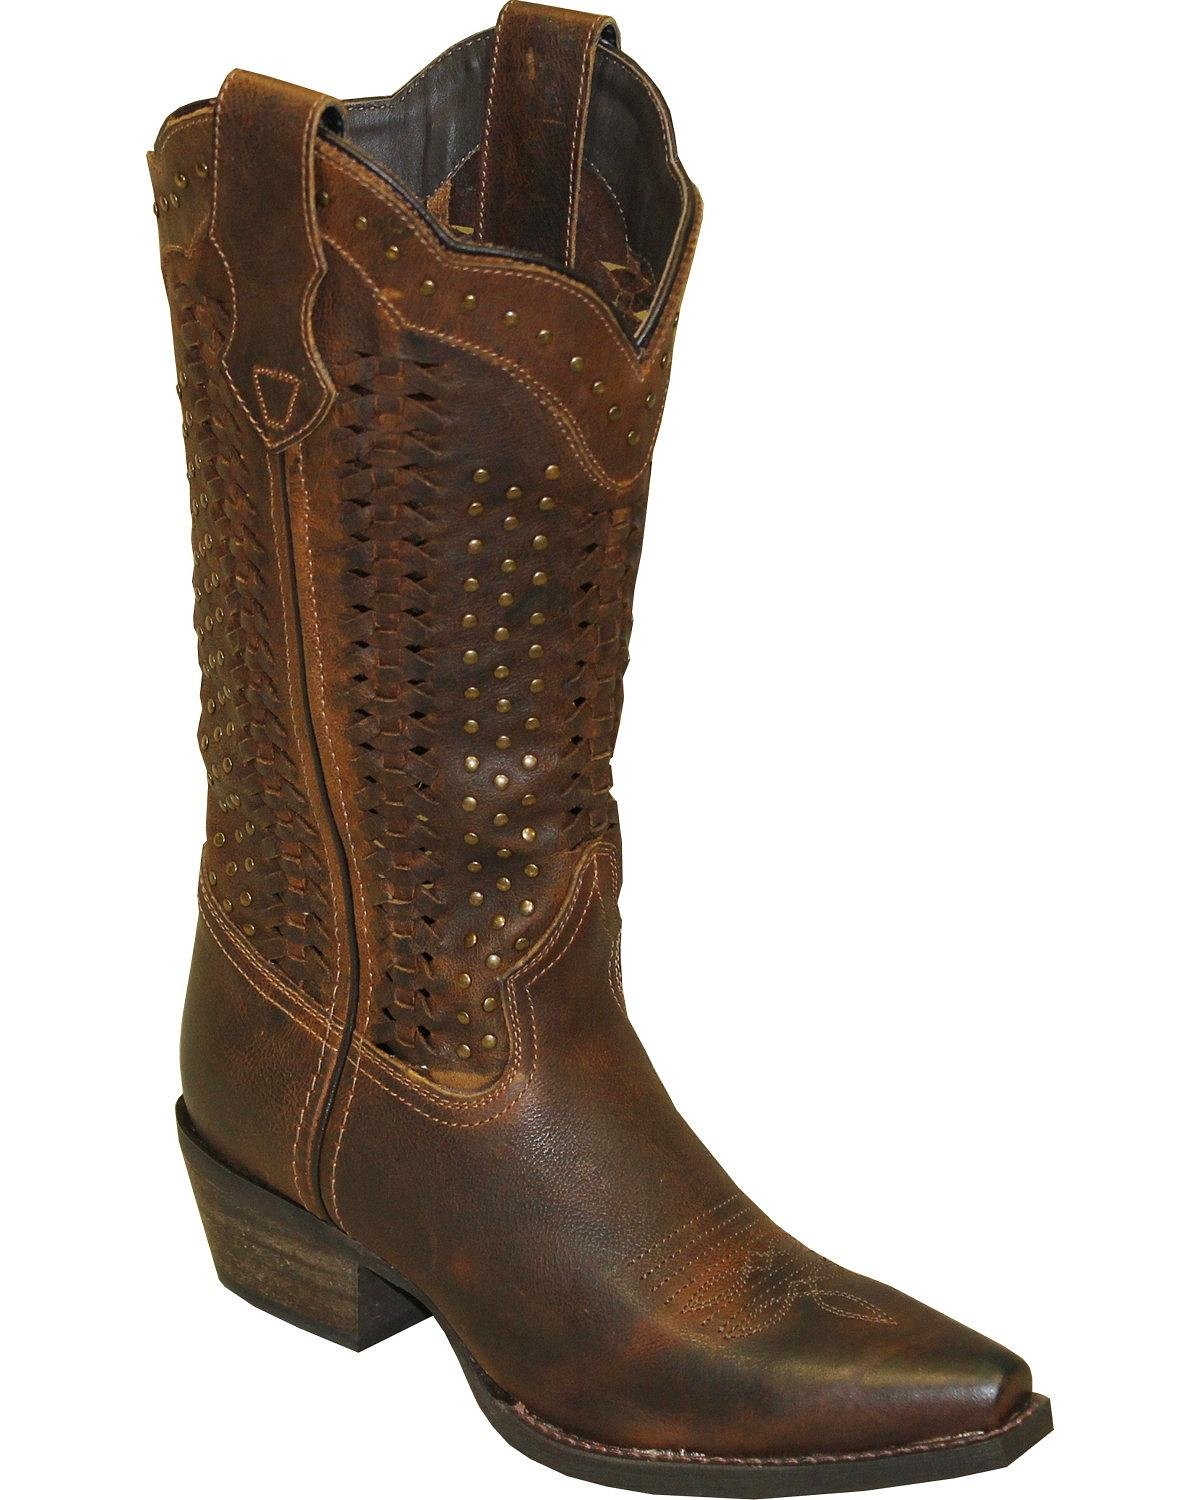 Abilene Women's Rawhide by Scalloped and Weaving Western Boot Snip Toe - 5143 B077GVTVD1 6 B(M) US|Brown